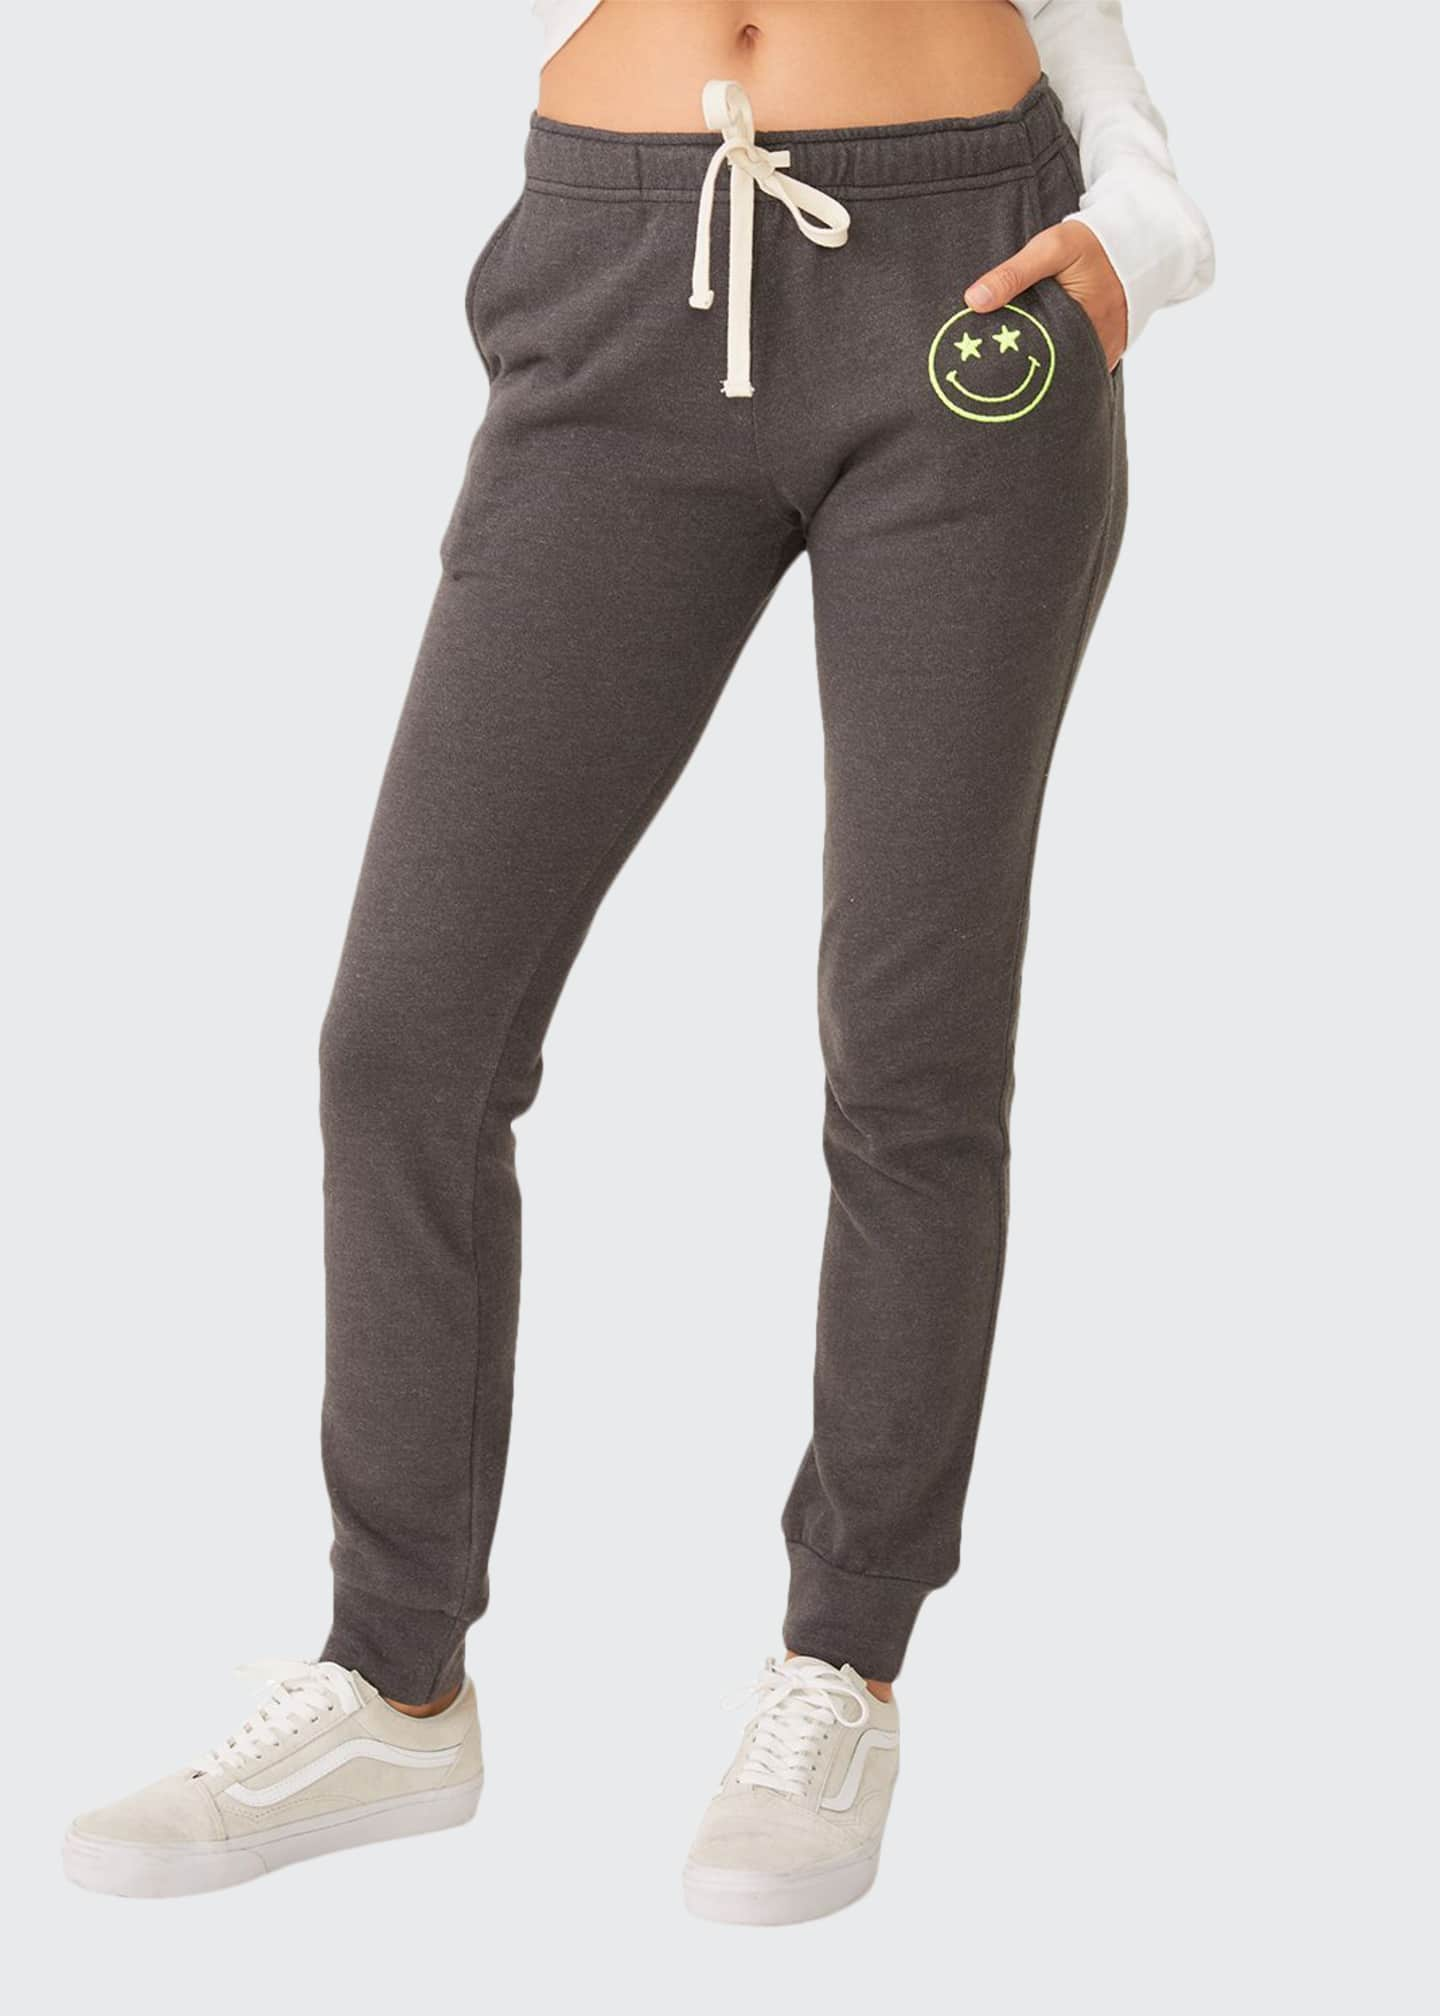 Monrow Girlfriend Drawstring Sweatpants with Embroidered Smiley